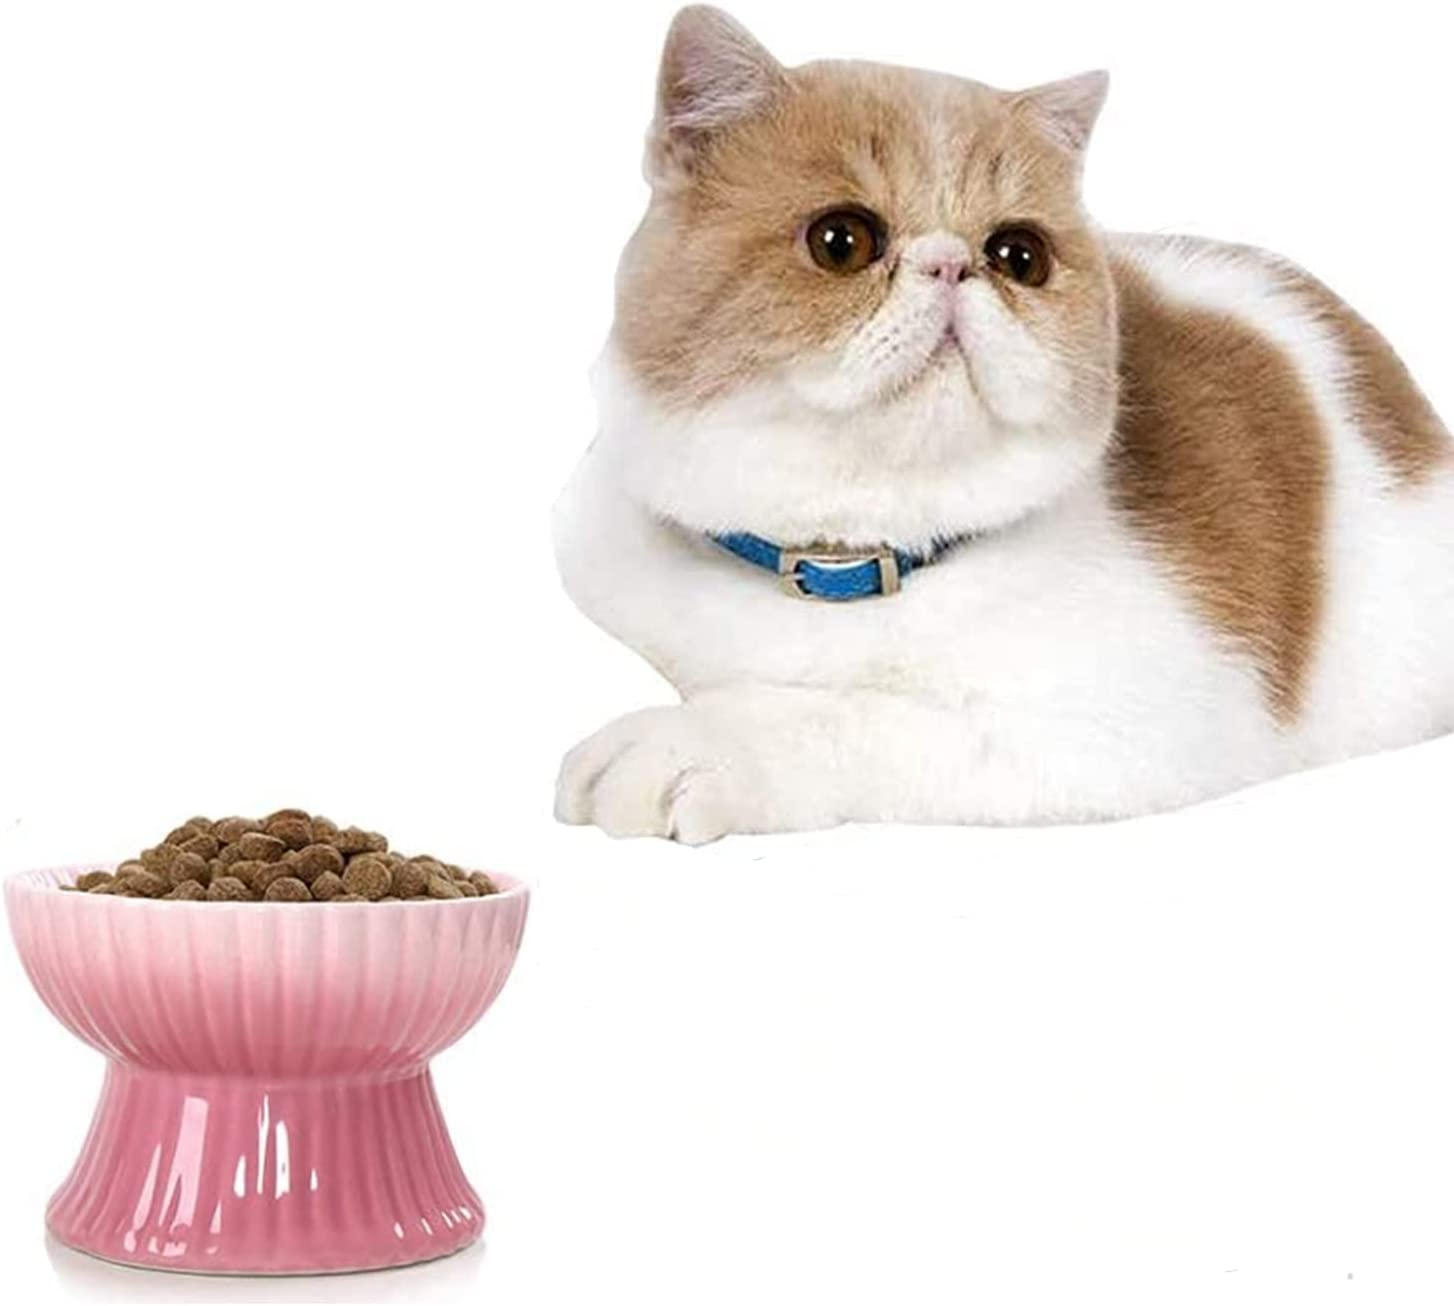 Raised Cat Food Bowls, Elevated Ceramic Cat Food Bowls Small Dog Dish Pet Food Bowls for Eating Stress Free, Anti Vomiting (Pink)